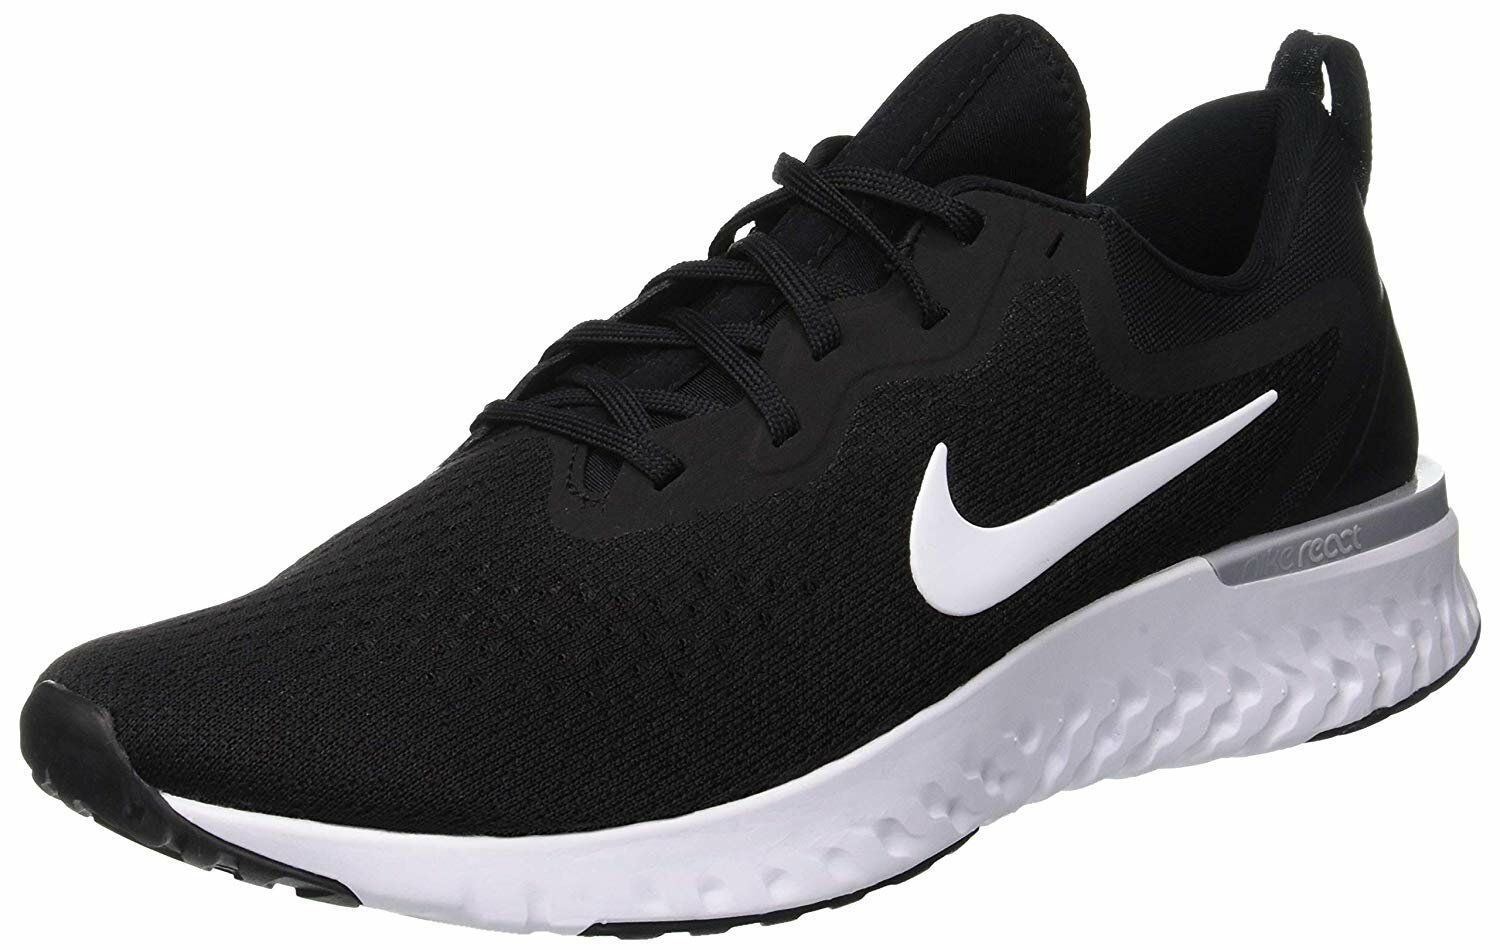 NIKE Hommes Odyssey React React Odyssey Running Chaussures 62e856